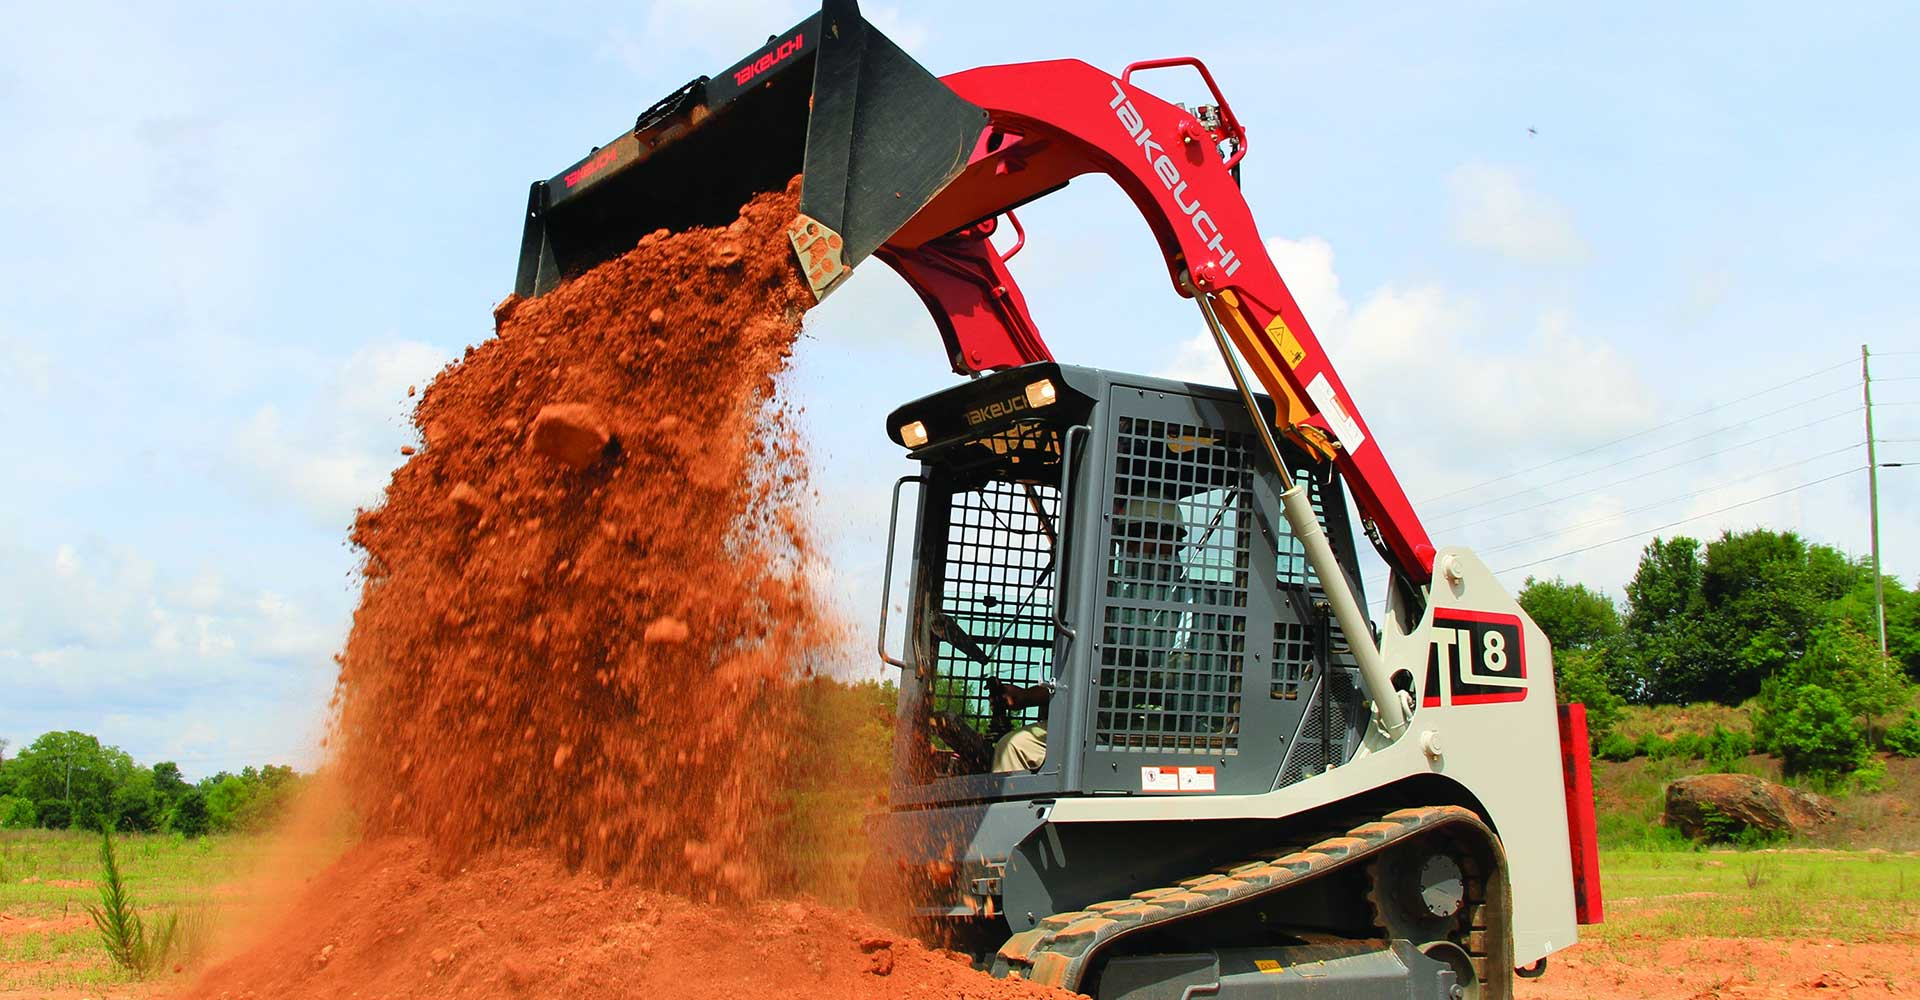 Construction Equipment & Tool Rentals in Kansas City